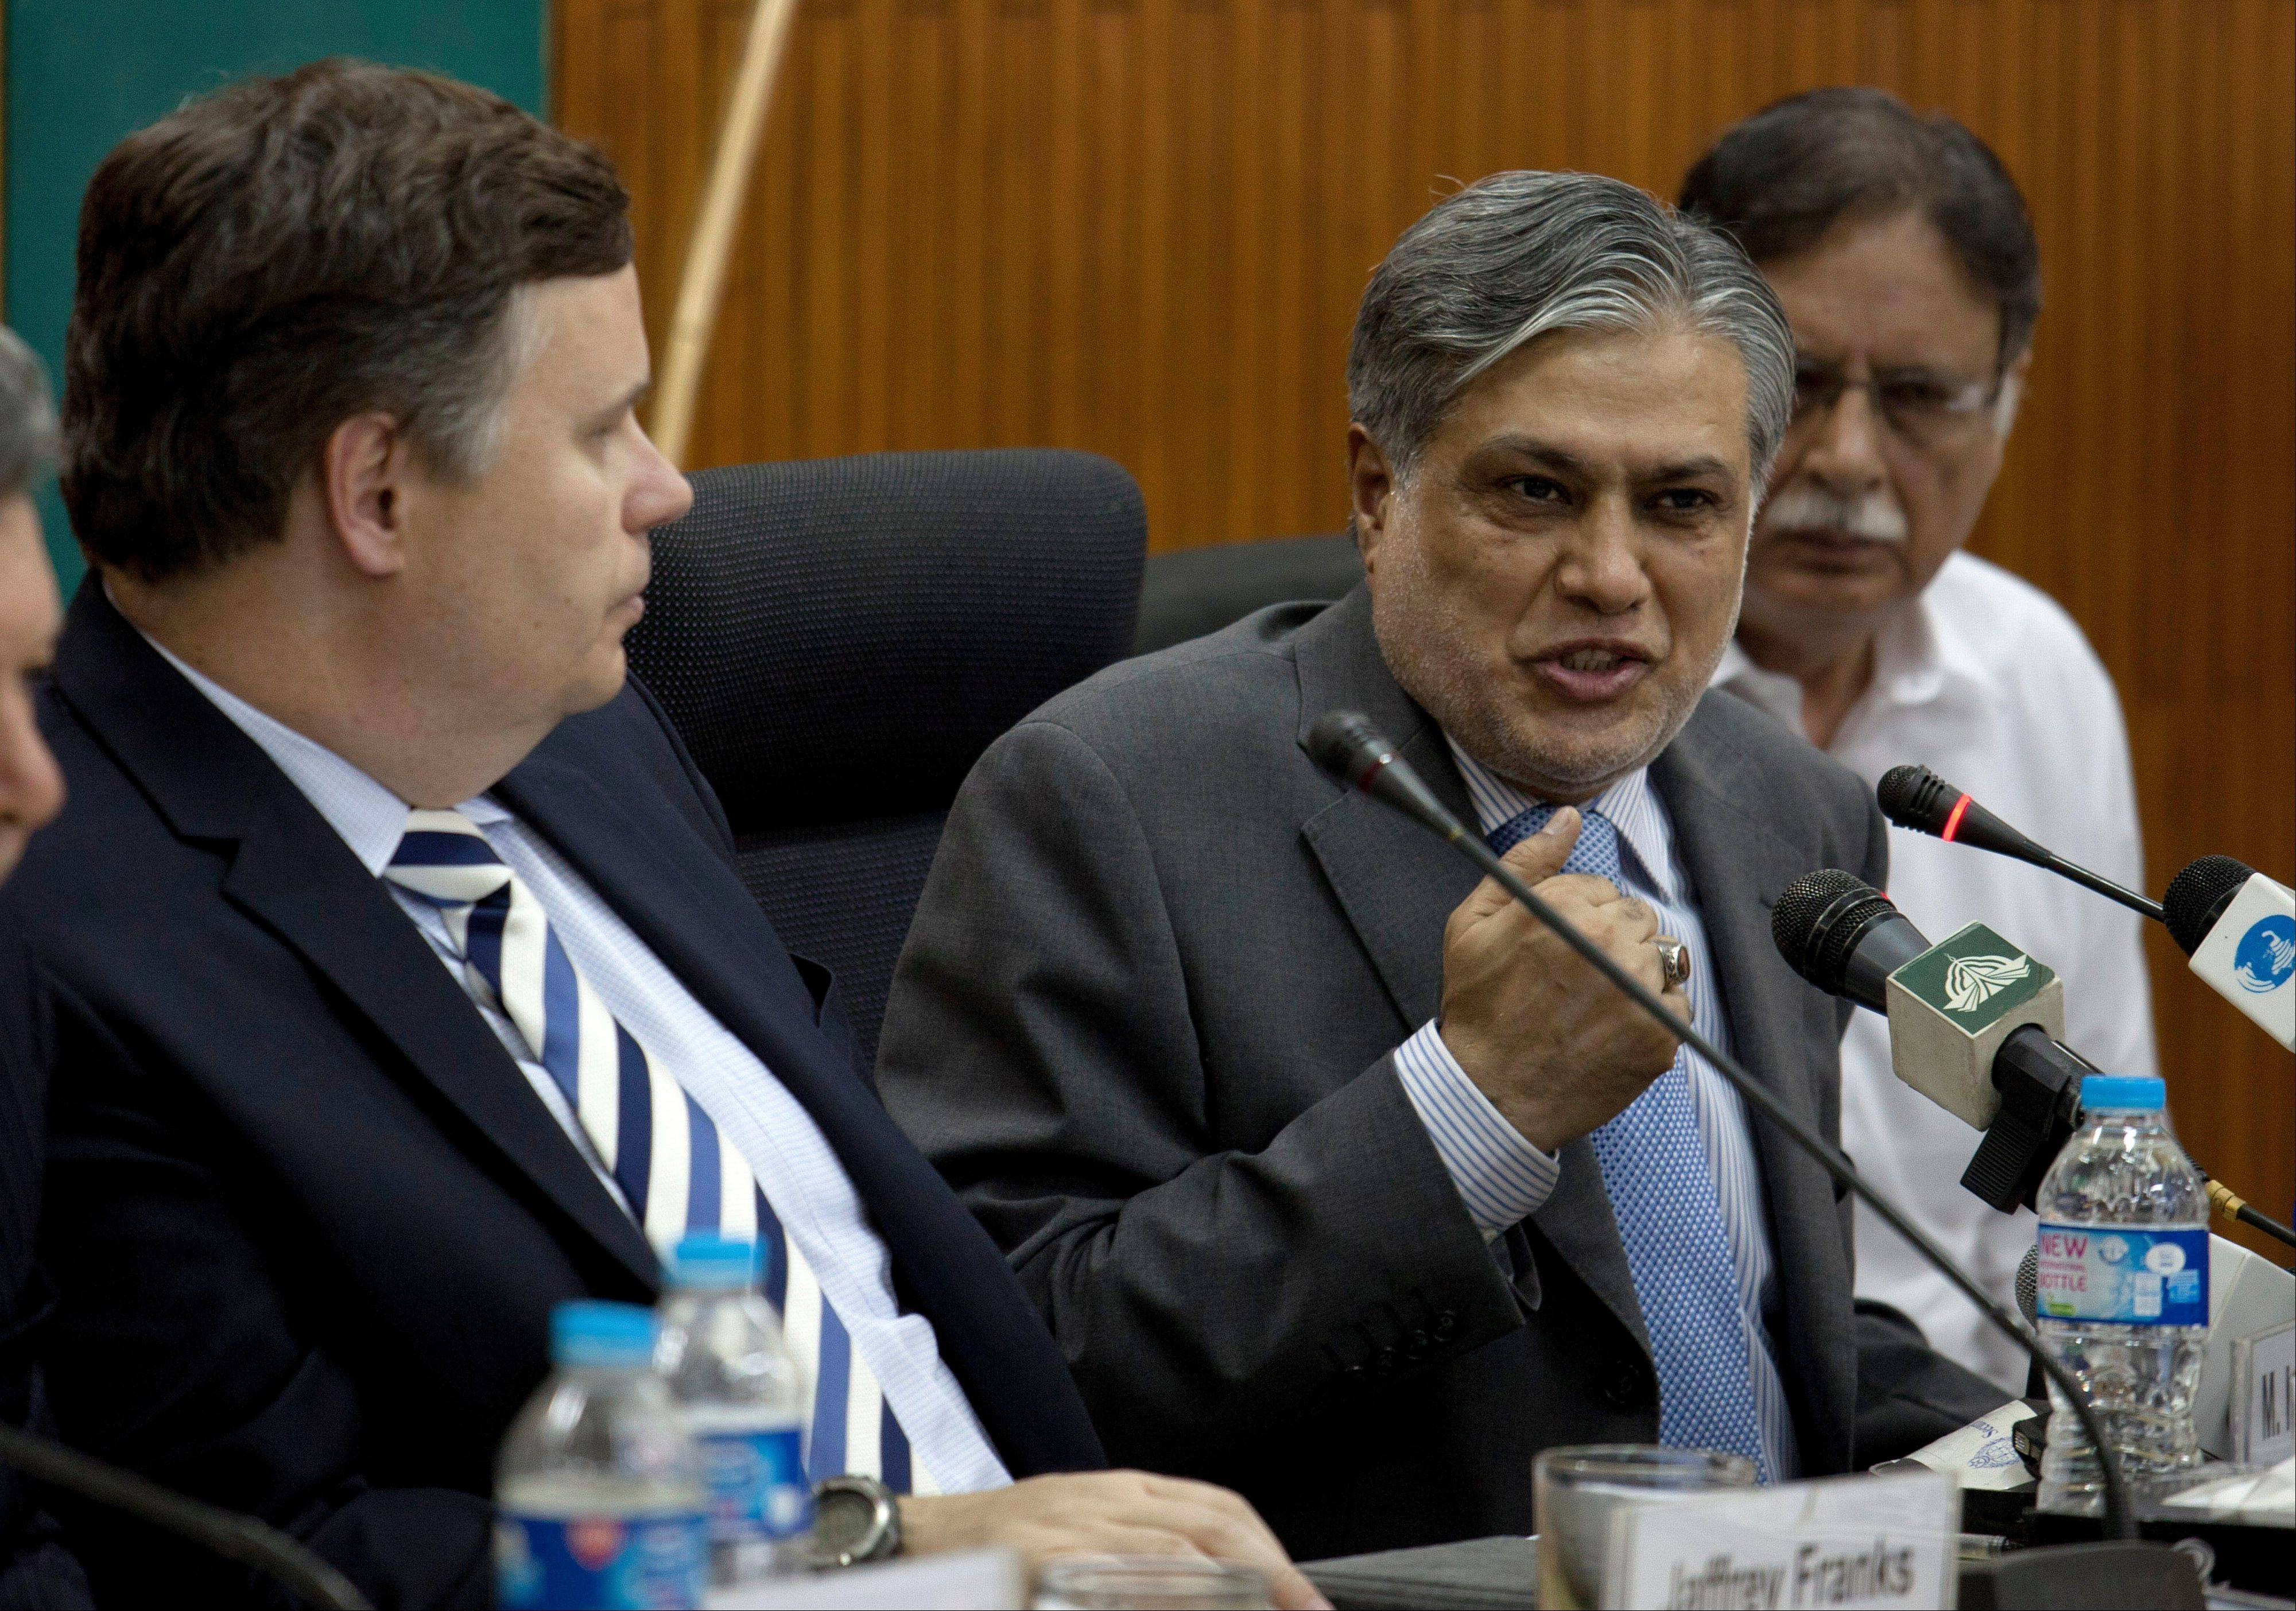 Pakistani Finance Minister Muhammad Ishaq Dar, center addresses a news conference with IMF mission chief Jeffrey Franks, left, at the finance ministry in Islamabad, Pakistan on Thursday. Pakistan and the International Monetary Fund have reached an initial agreement on a bailout of at least $5.3 billion to stave off an economic crisis as the countryís foreign reserves dip perilously low, officials said Thursday.